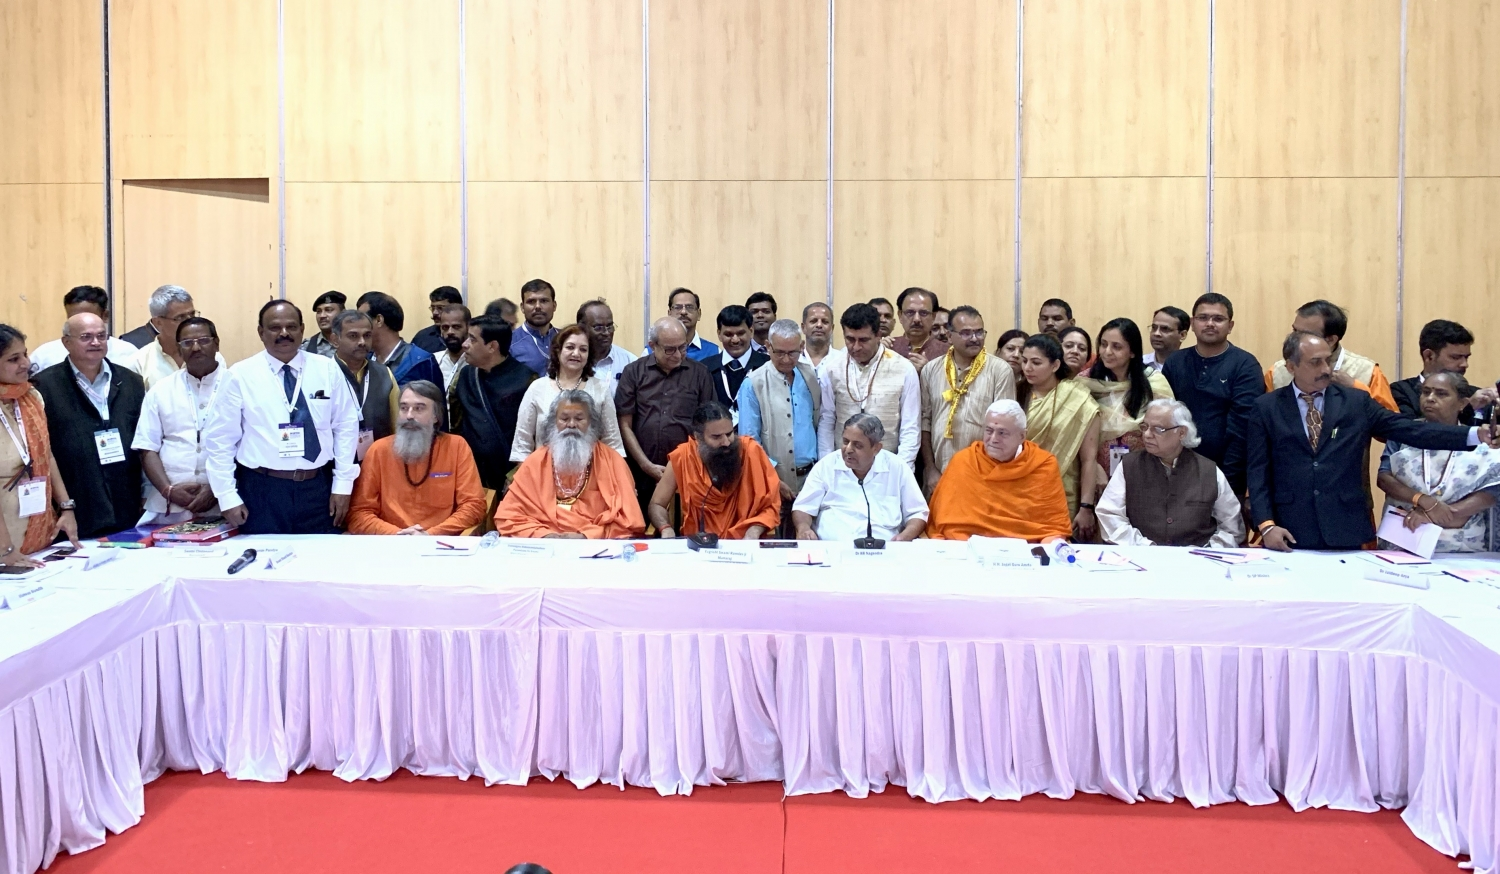 Meeting of the Indian Yoga Association - IYA